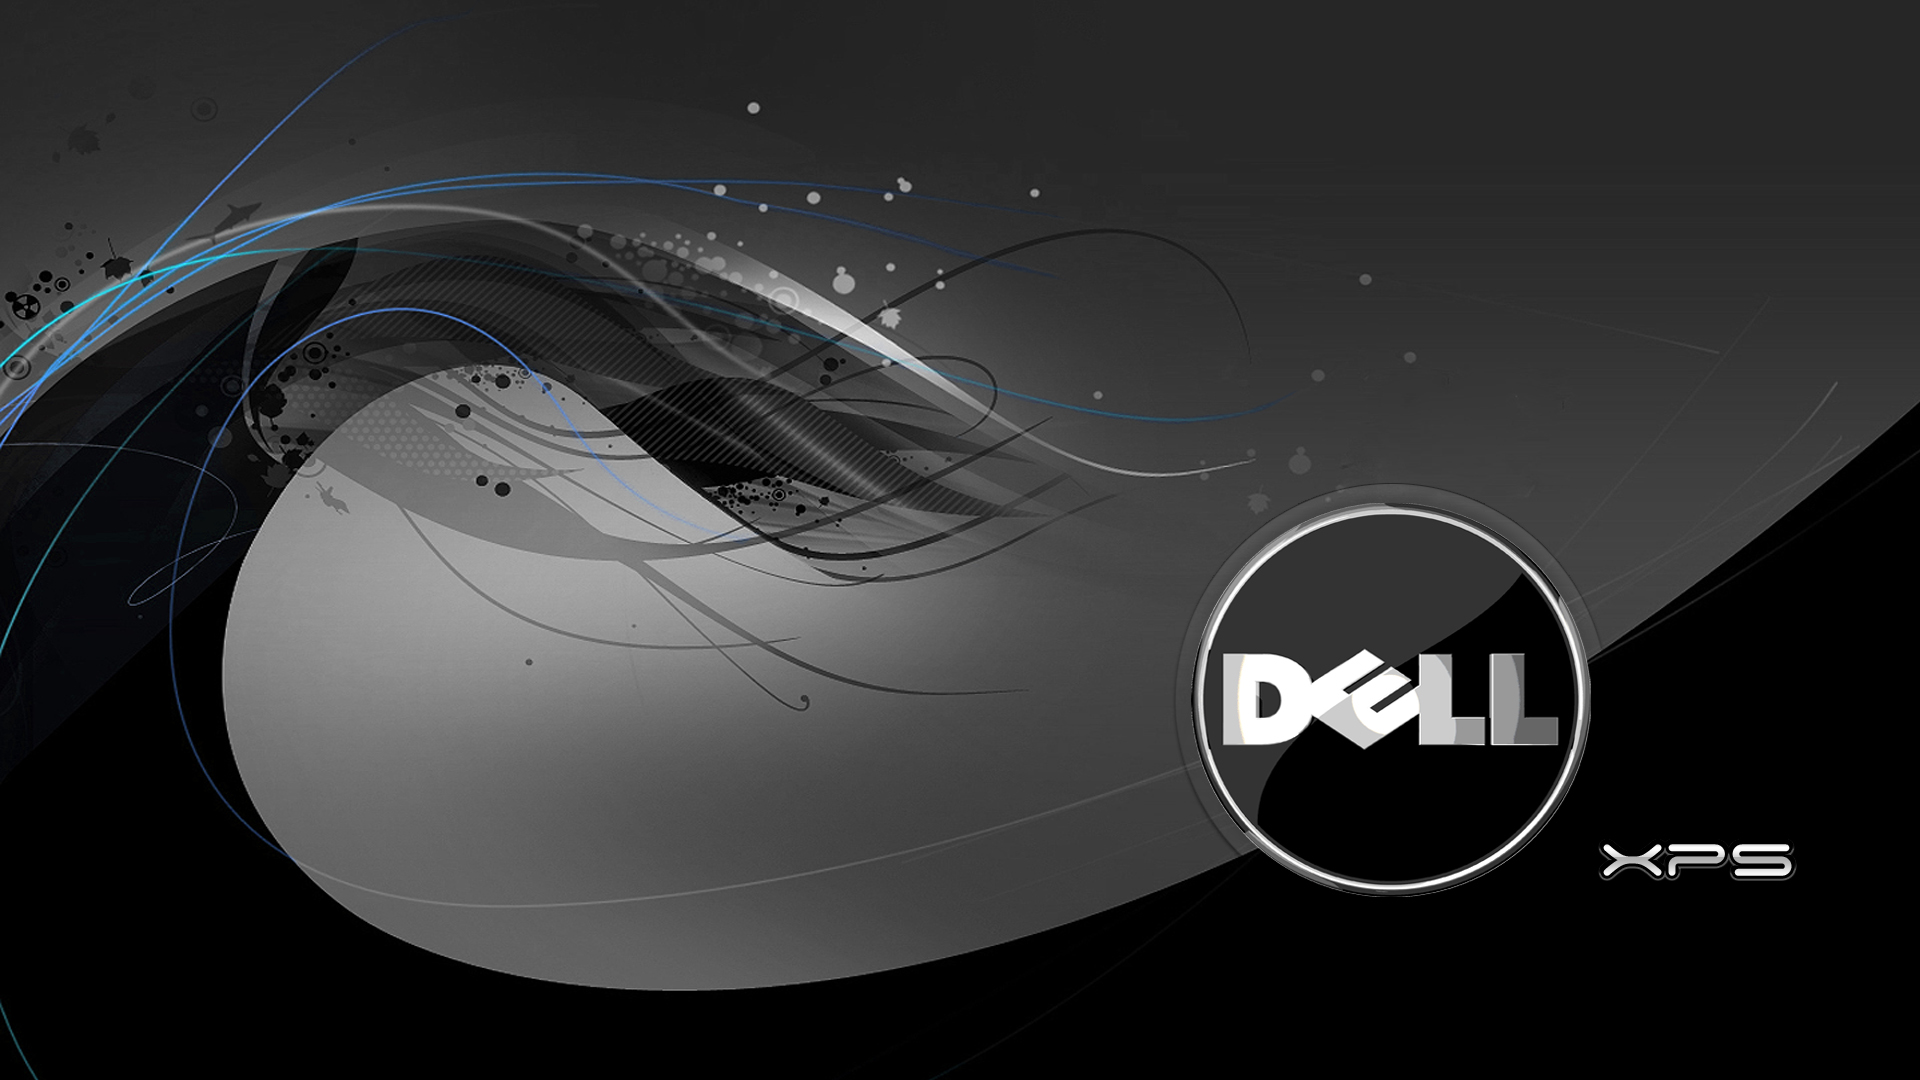 32 dell wallpapers for free download for Meilleur 3d